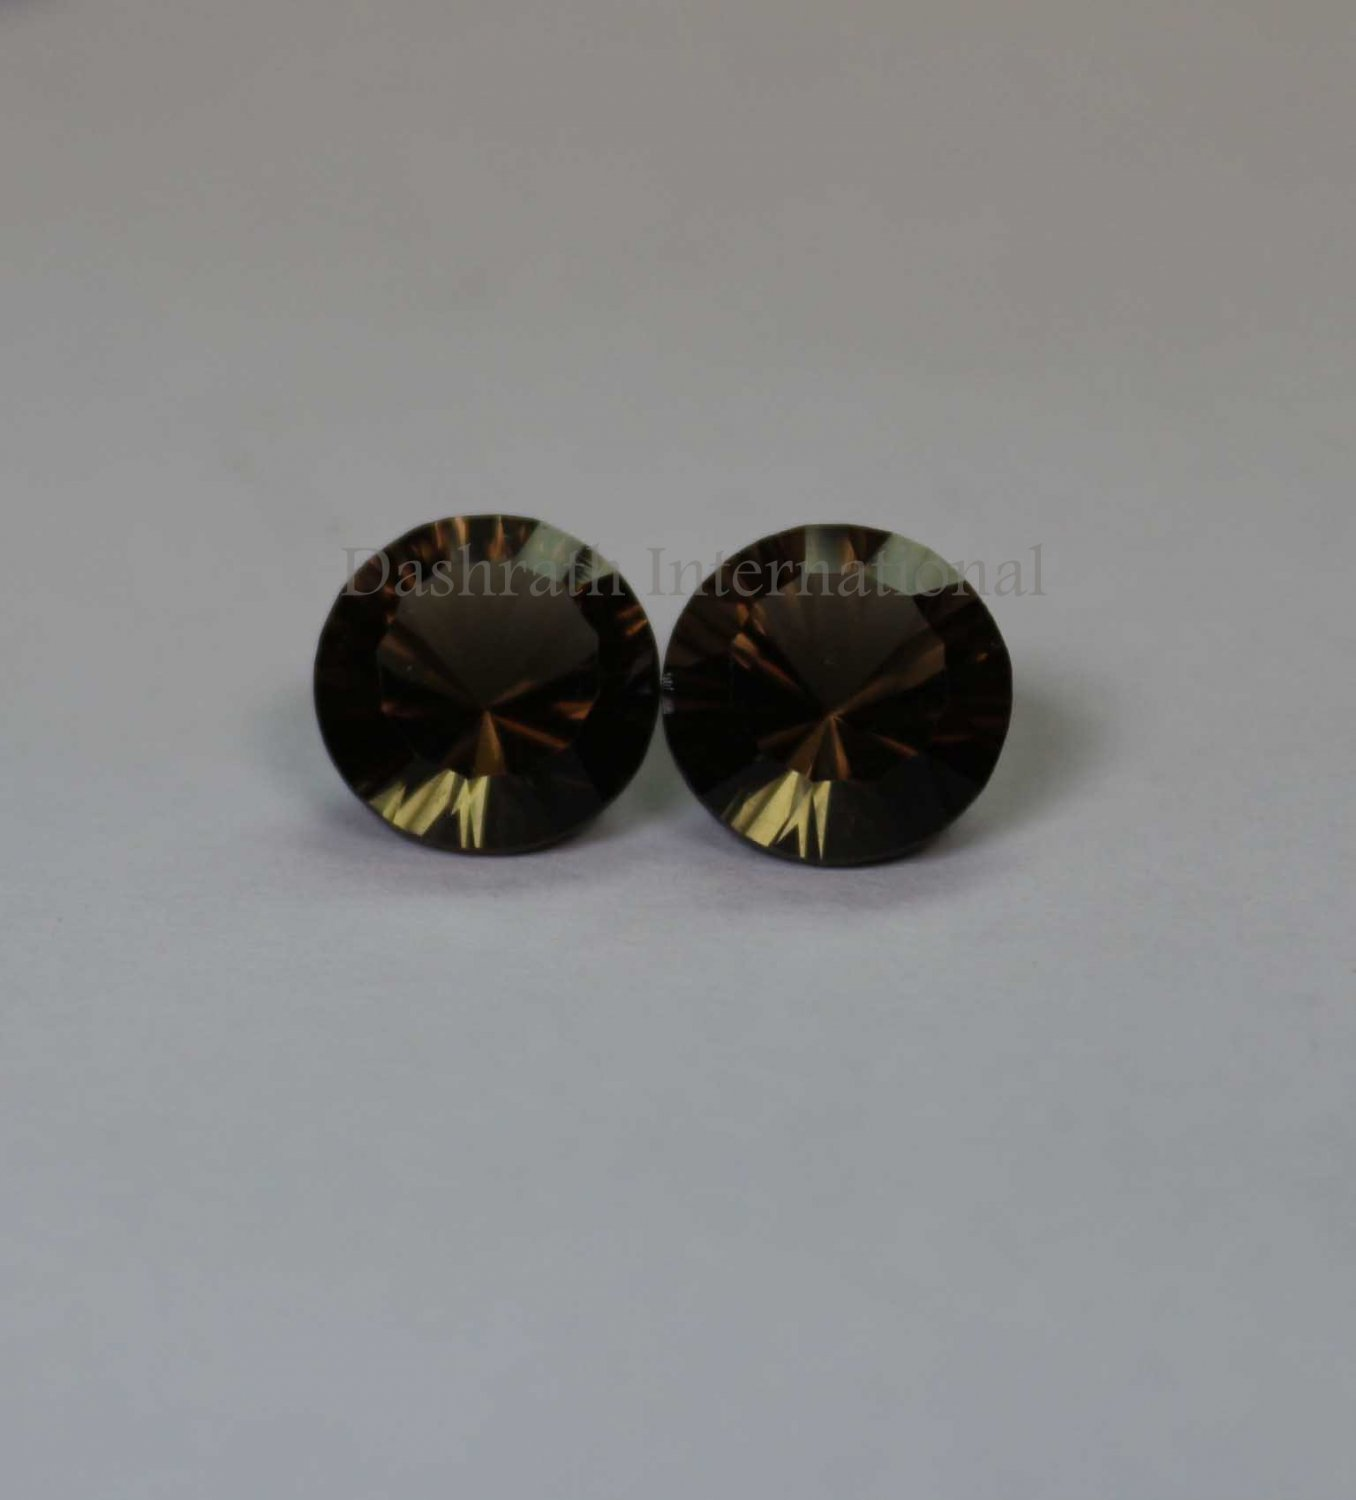 9mmNatural Smoky Quartz Concave Cut Round 2 Piece (1 Pair)   (SI) Top Quality  Loose Gemstone